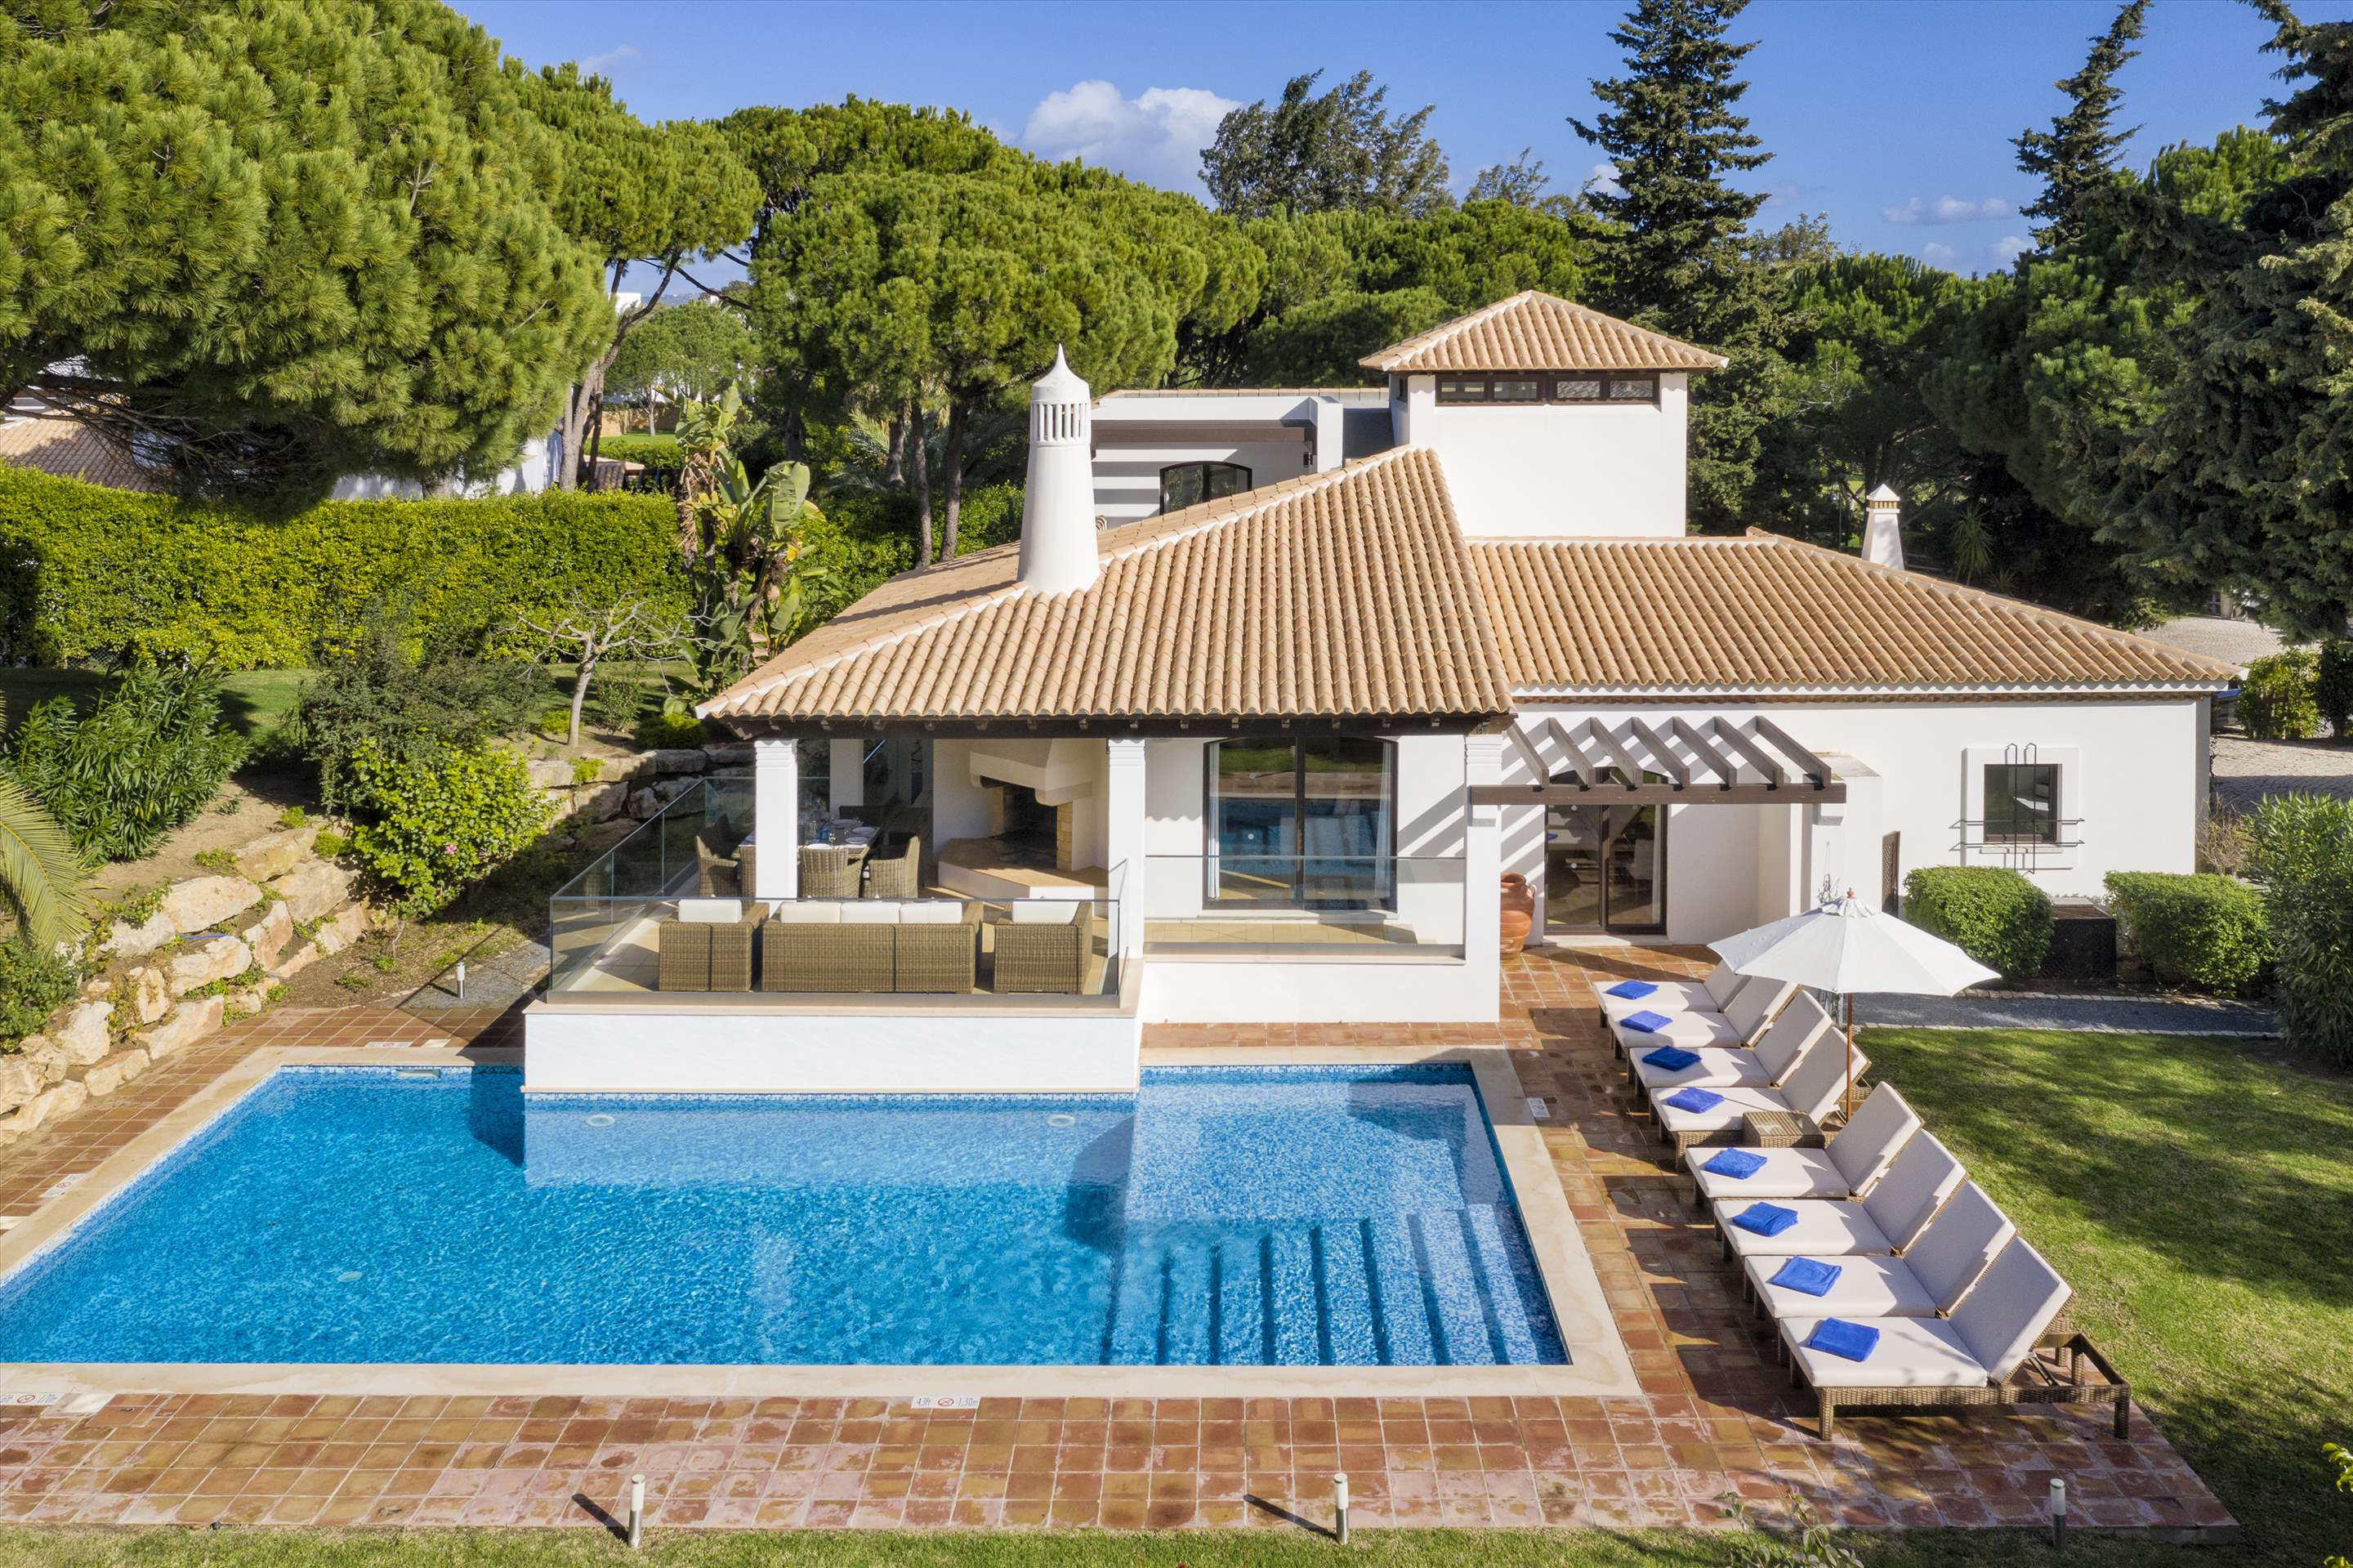 Pine Cliffs Villa Falesia, 4 bedroom rate, main house, 4 bedroom villa in Pine Cliffs Resort, Algarve Photo #11